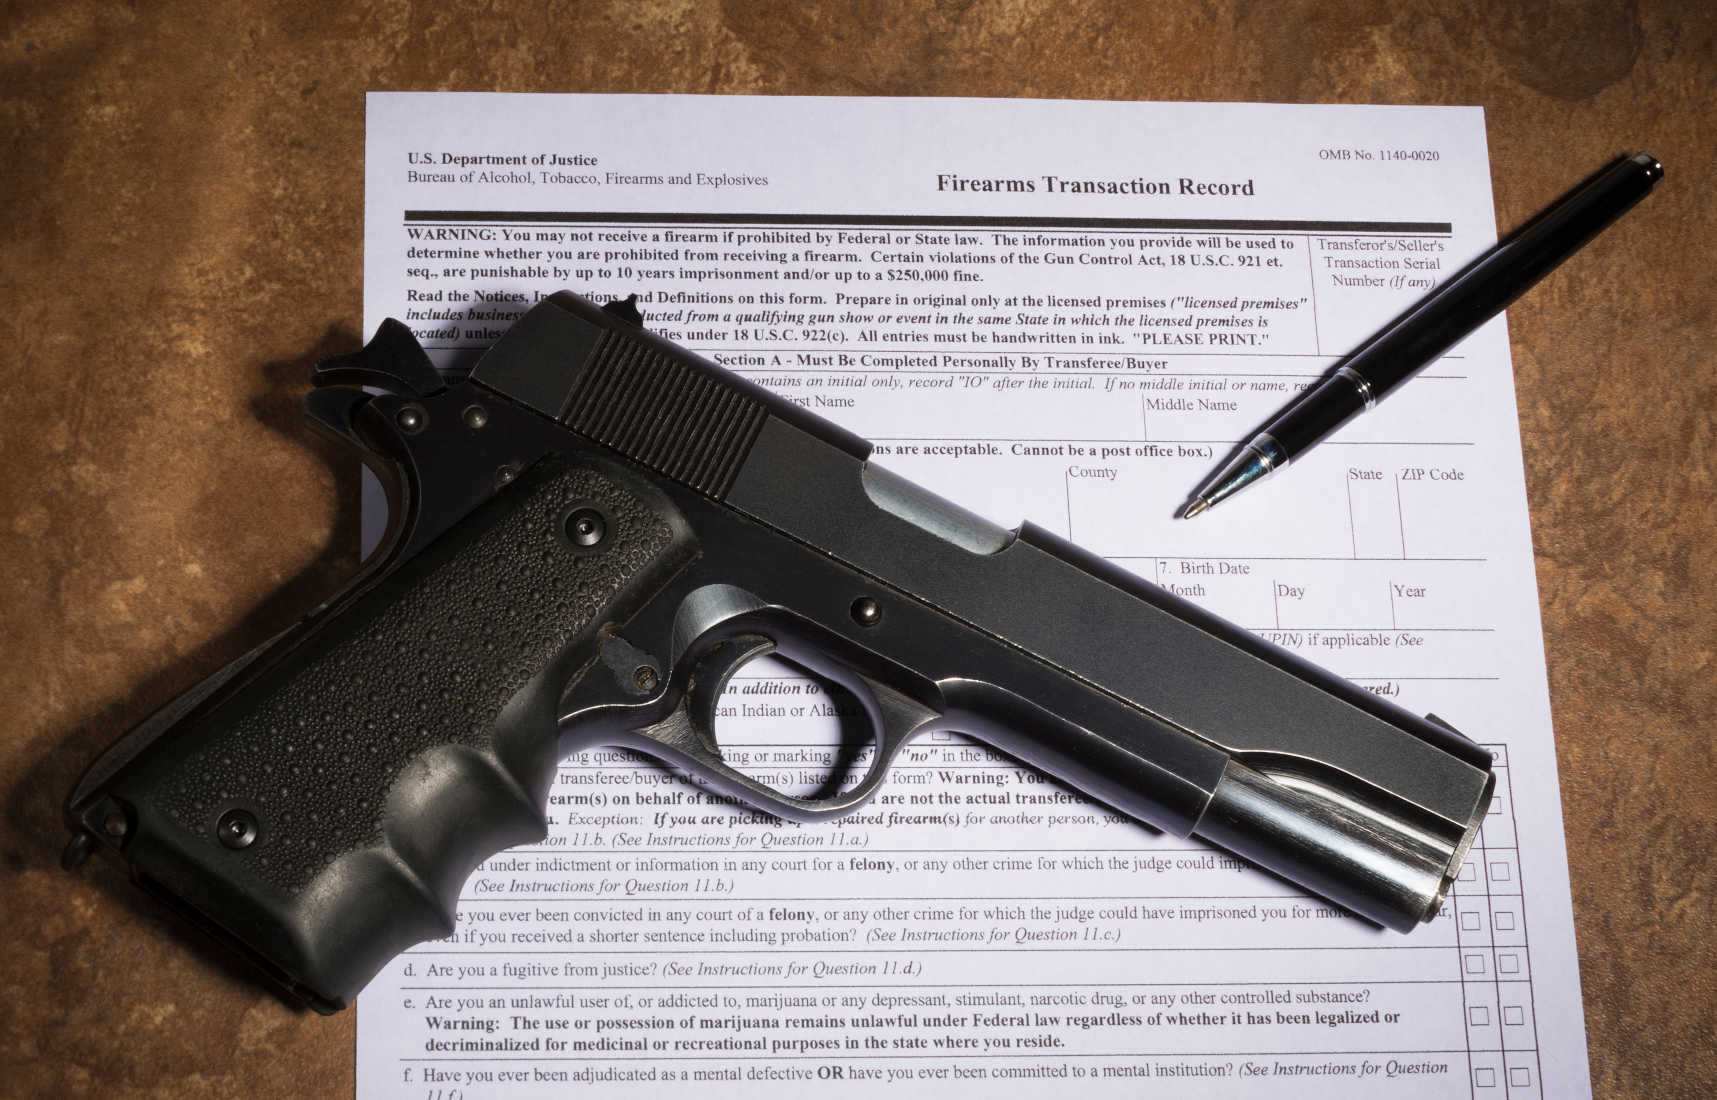 Background Checks Are Unconstitutional, Not 'Common Sense'